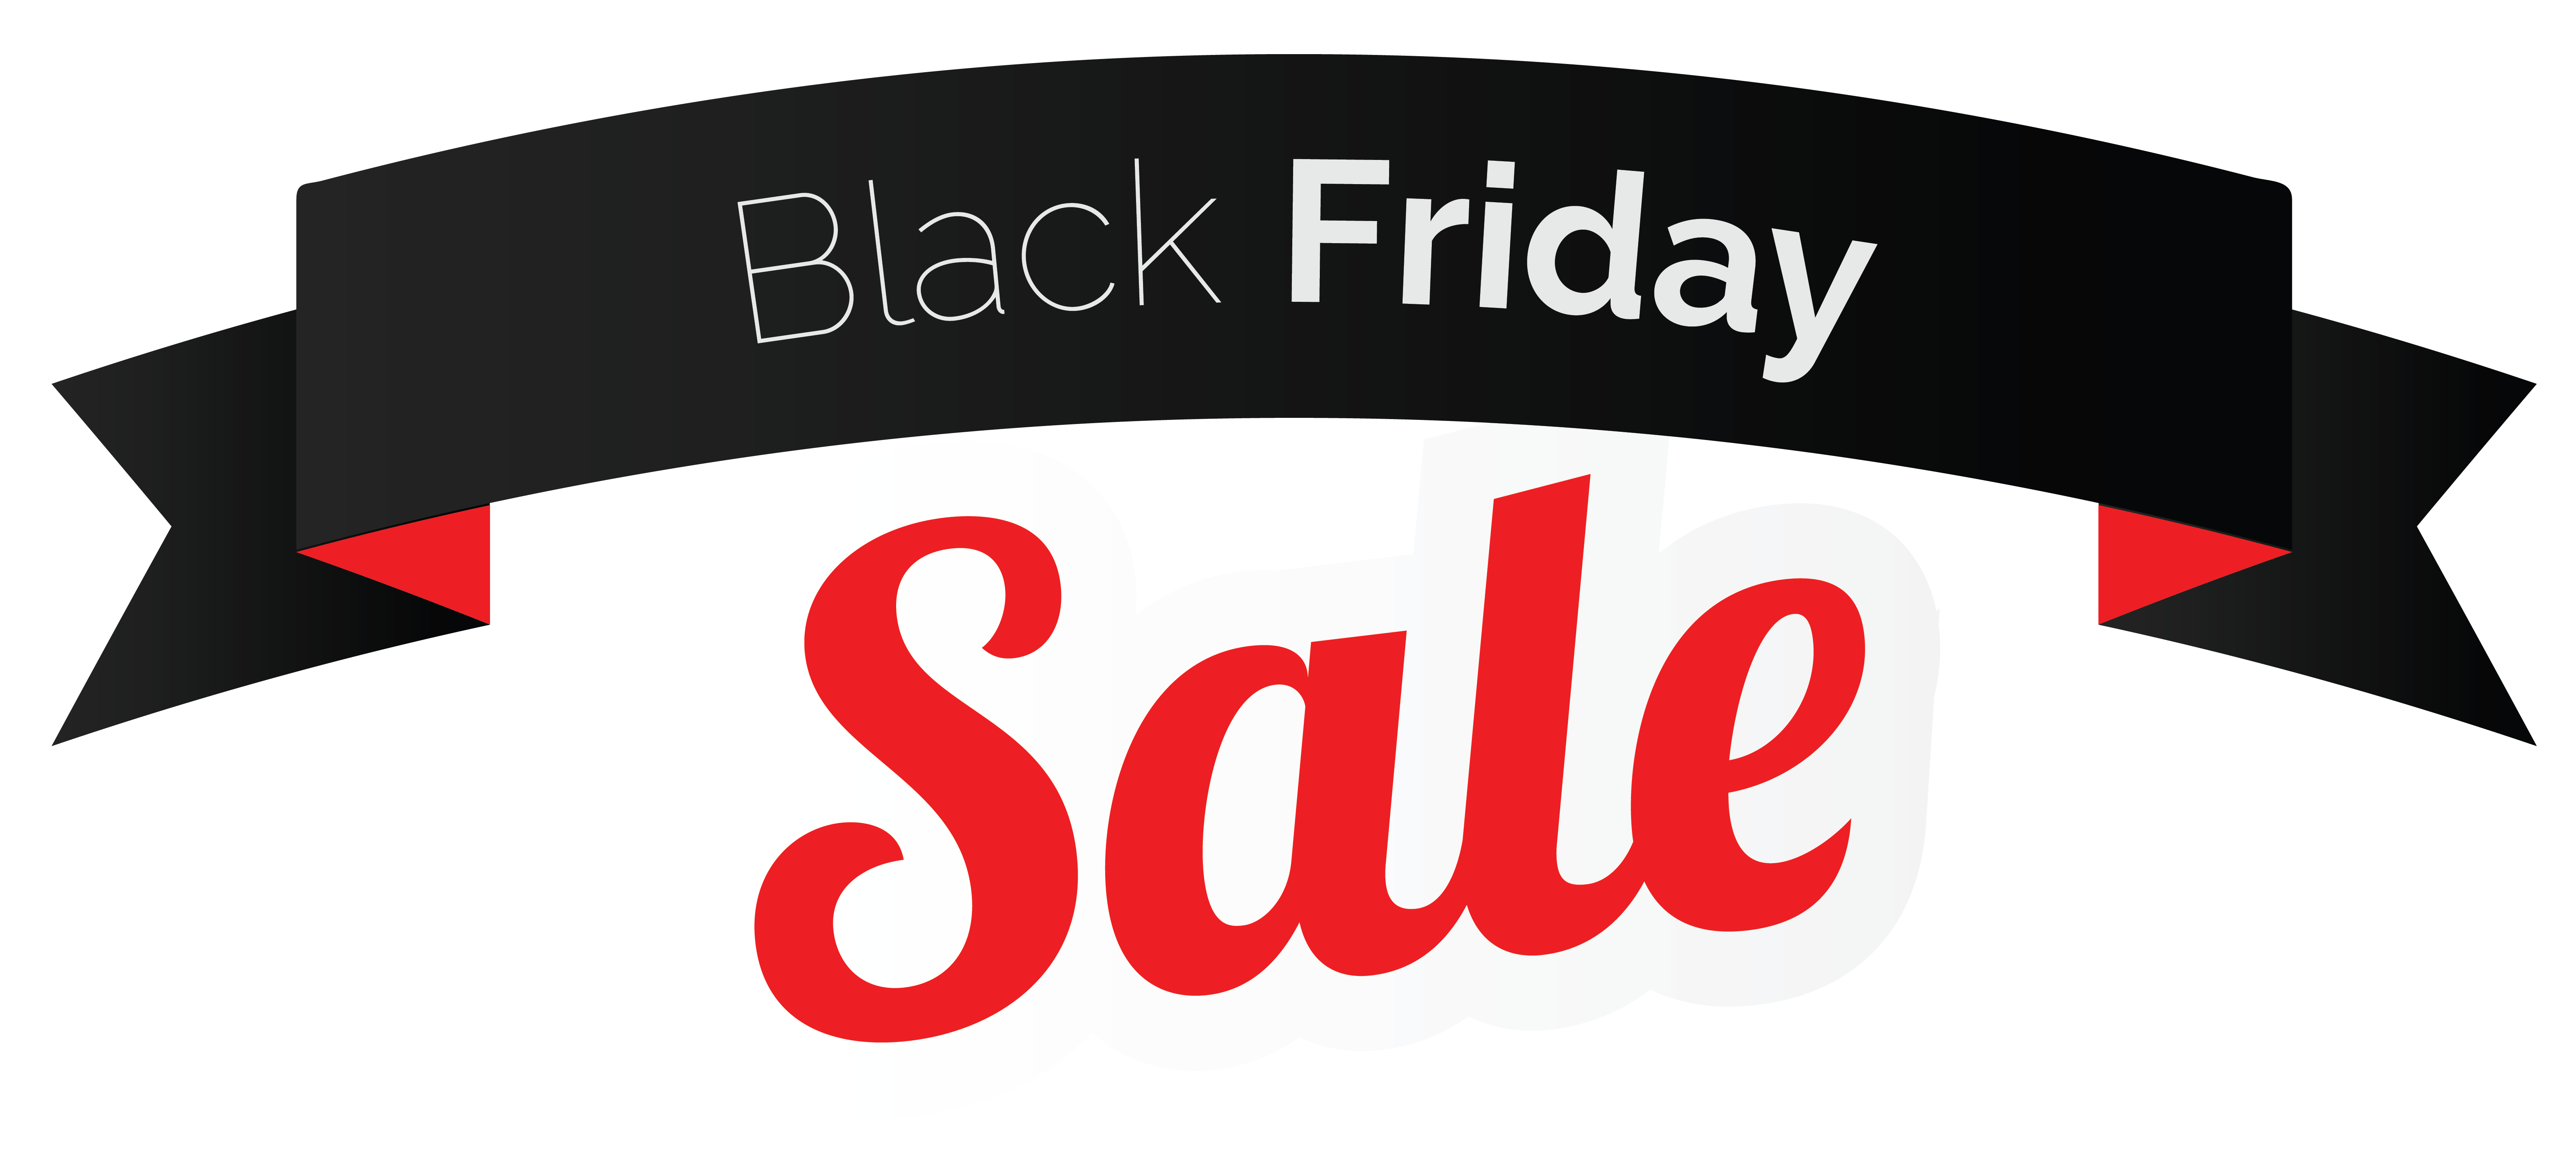 Sale Black Friday Monstermegs Black Friday 2016 Hosting Sale Monstermegs Blog